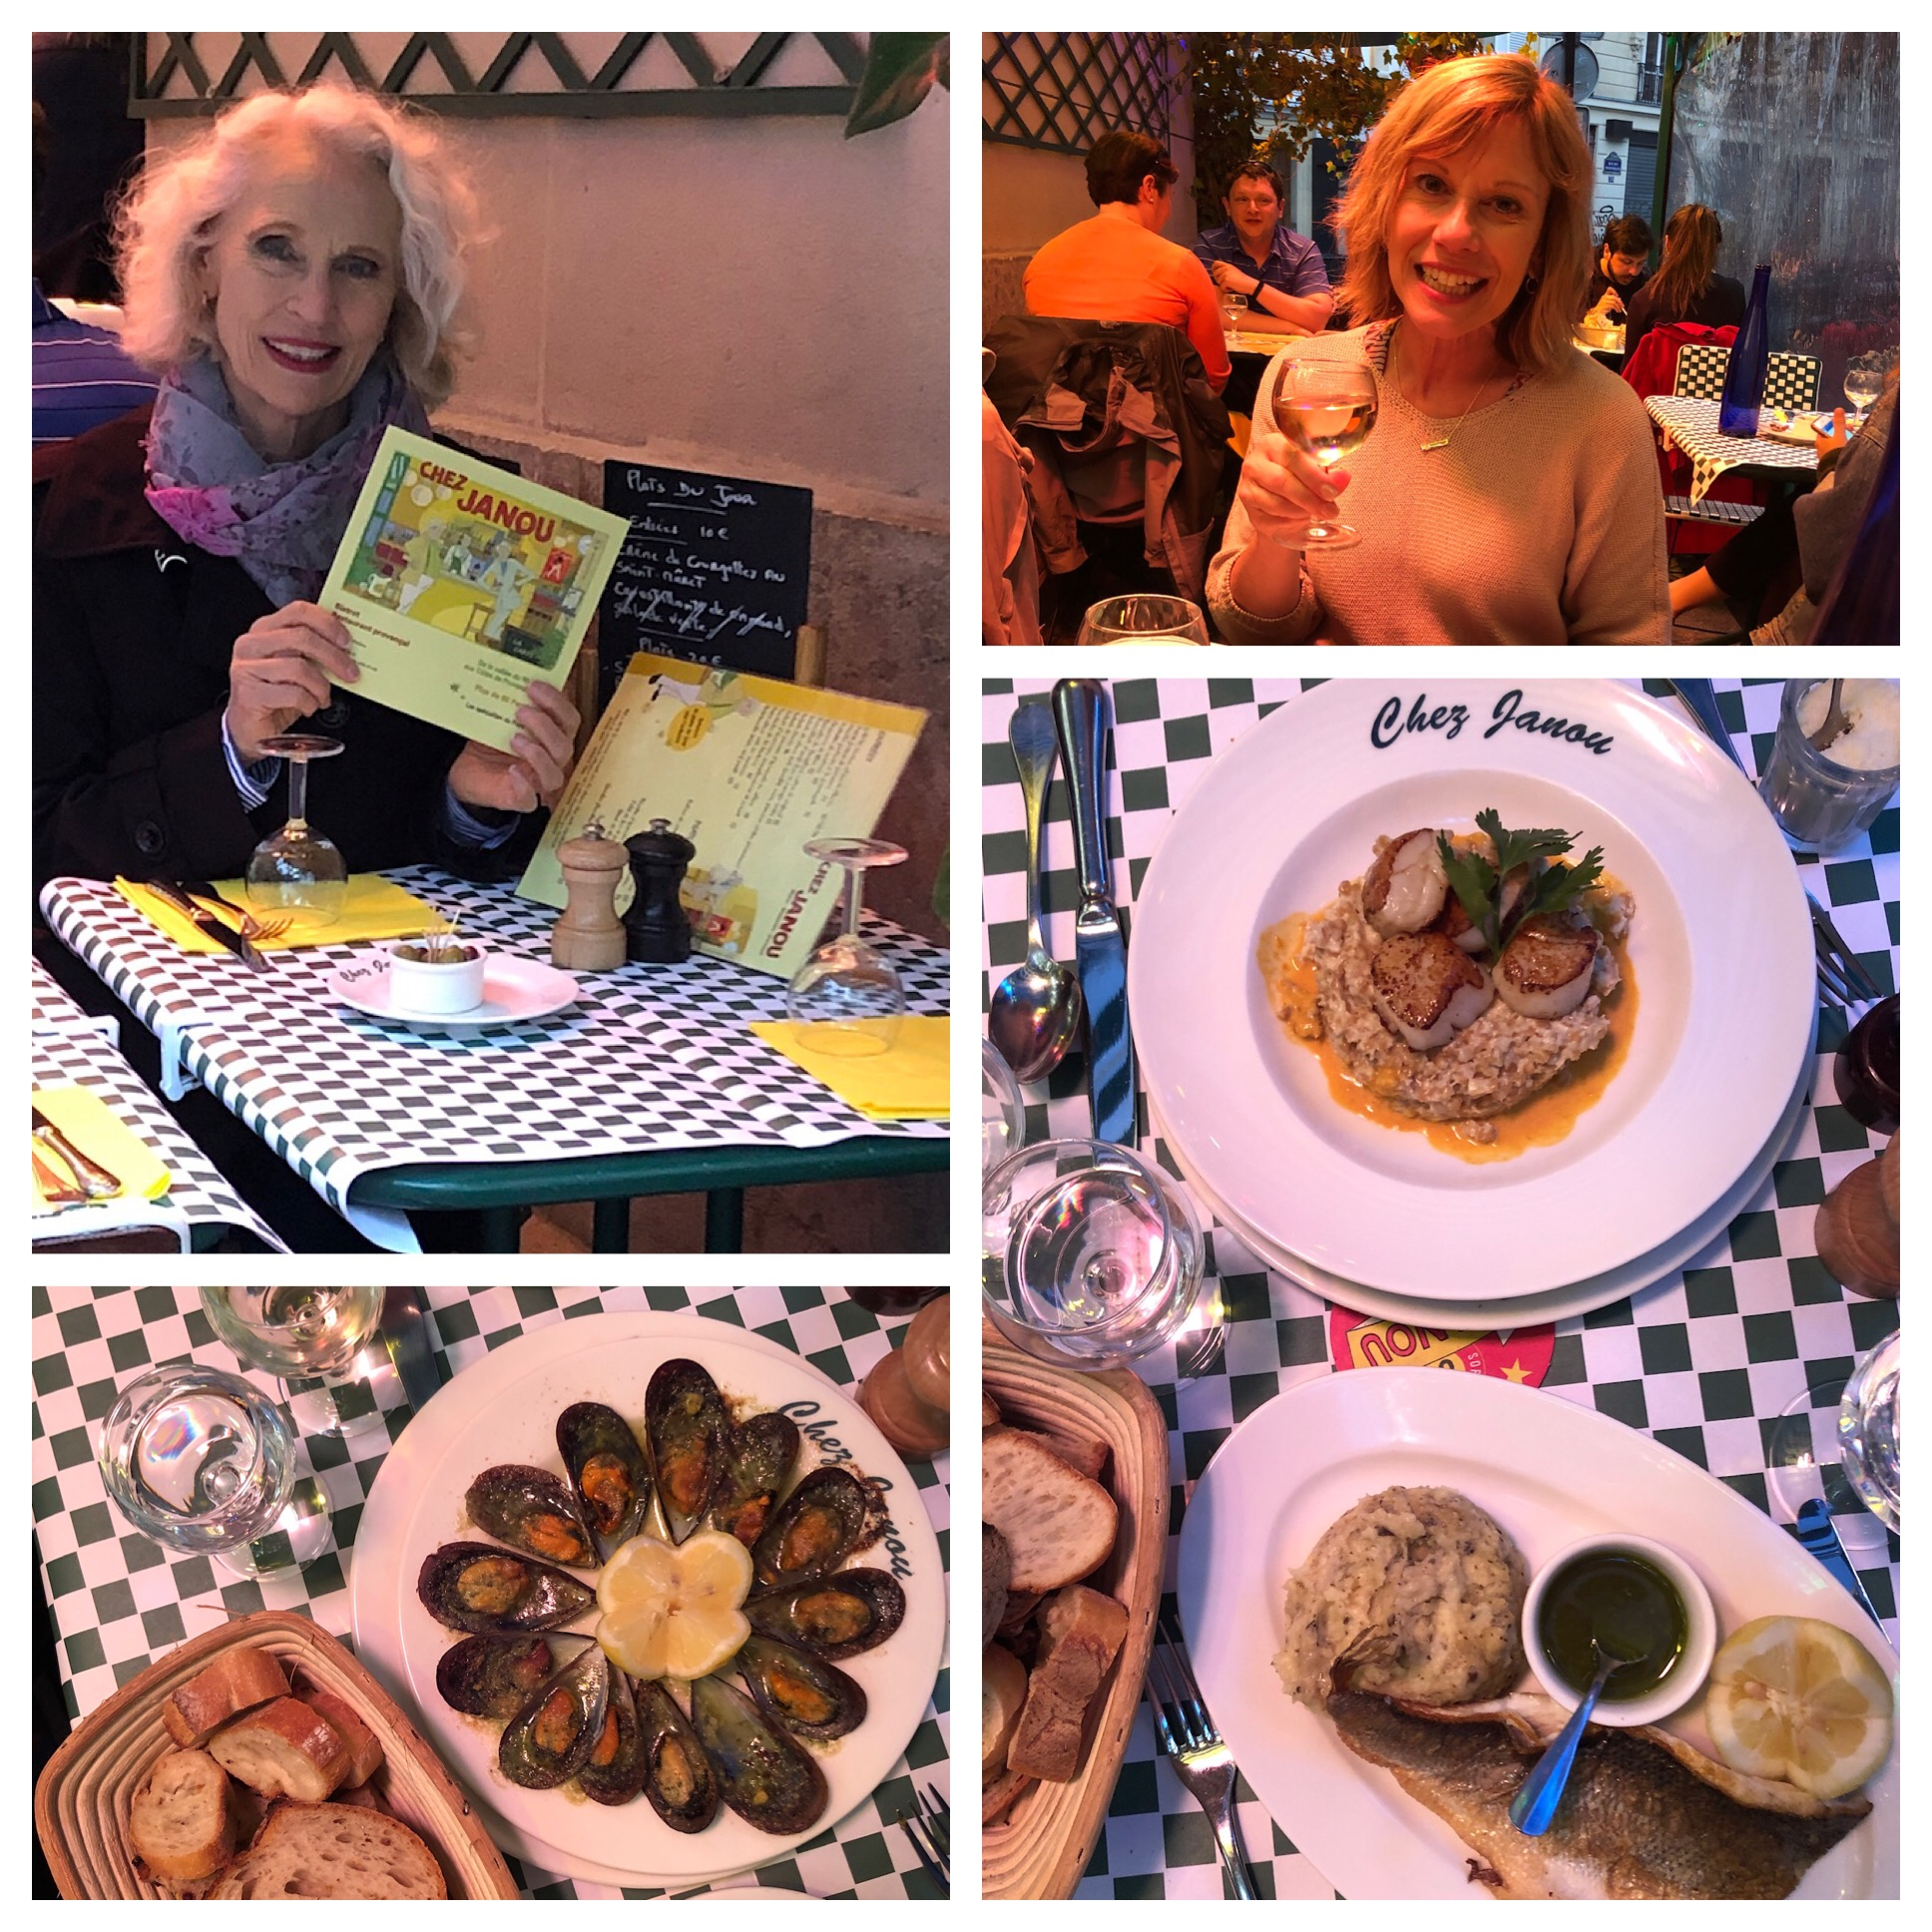 We shared amazing mussels for an appetizer - then scallops and risotto for Julie and Sea Bass with mashed potato for me. Yumm!